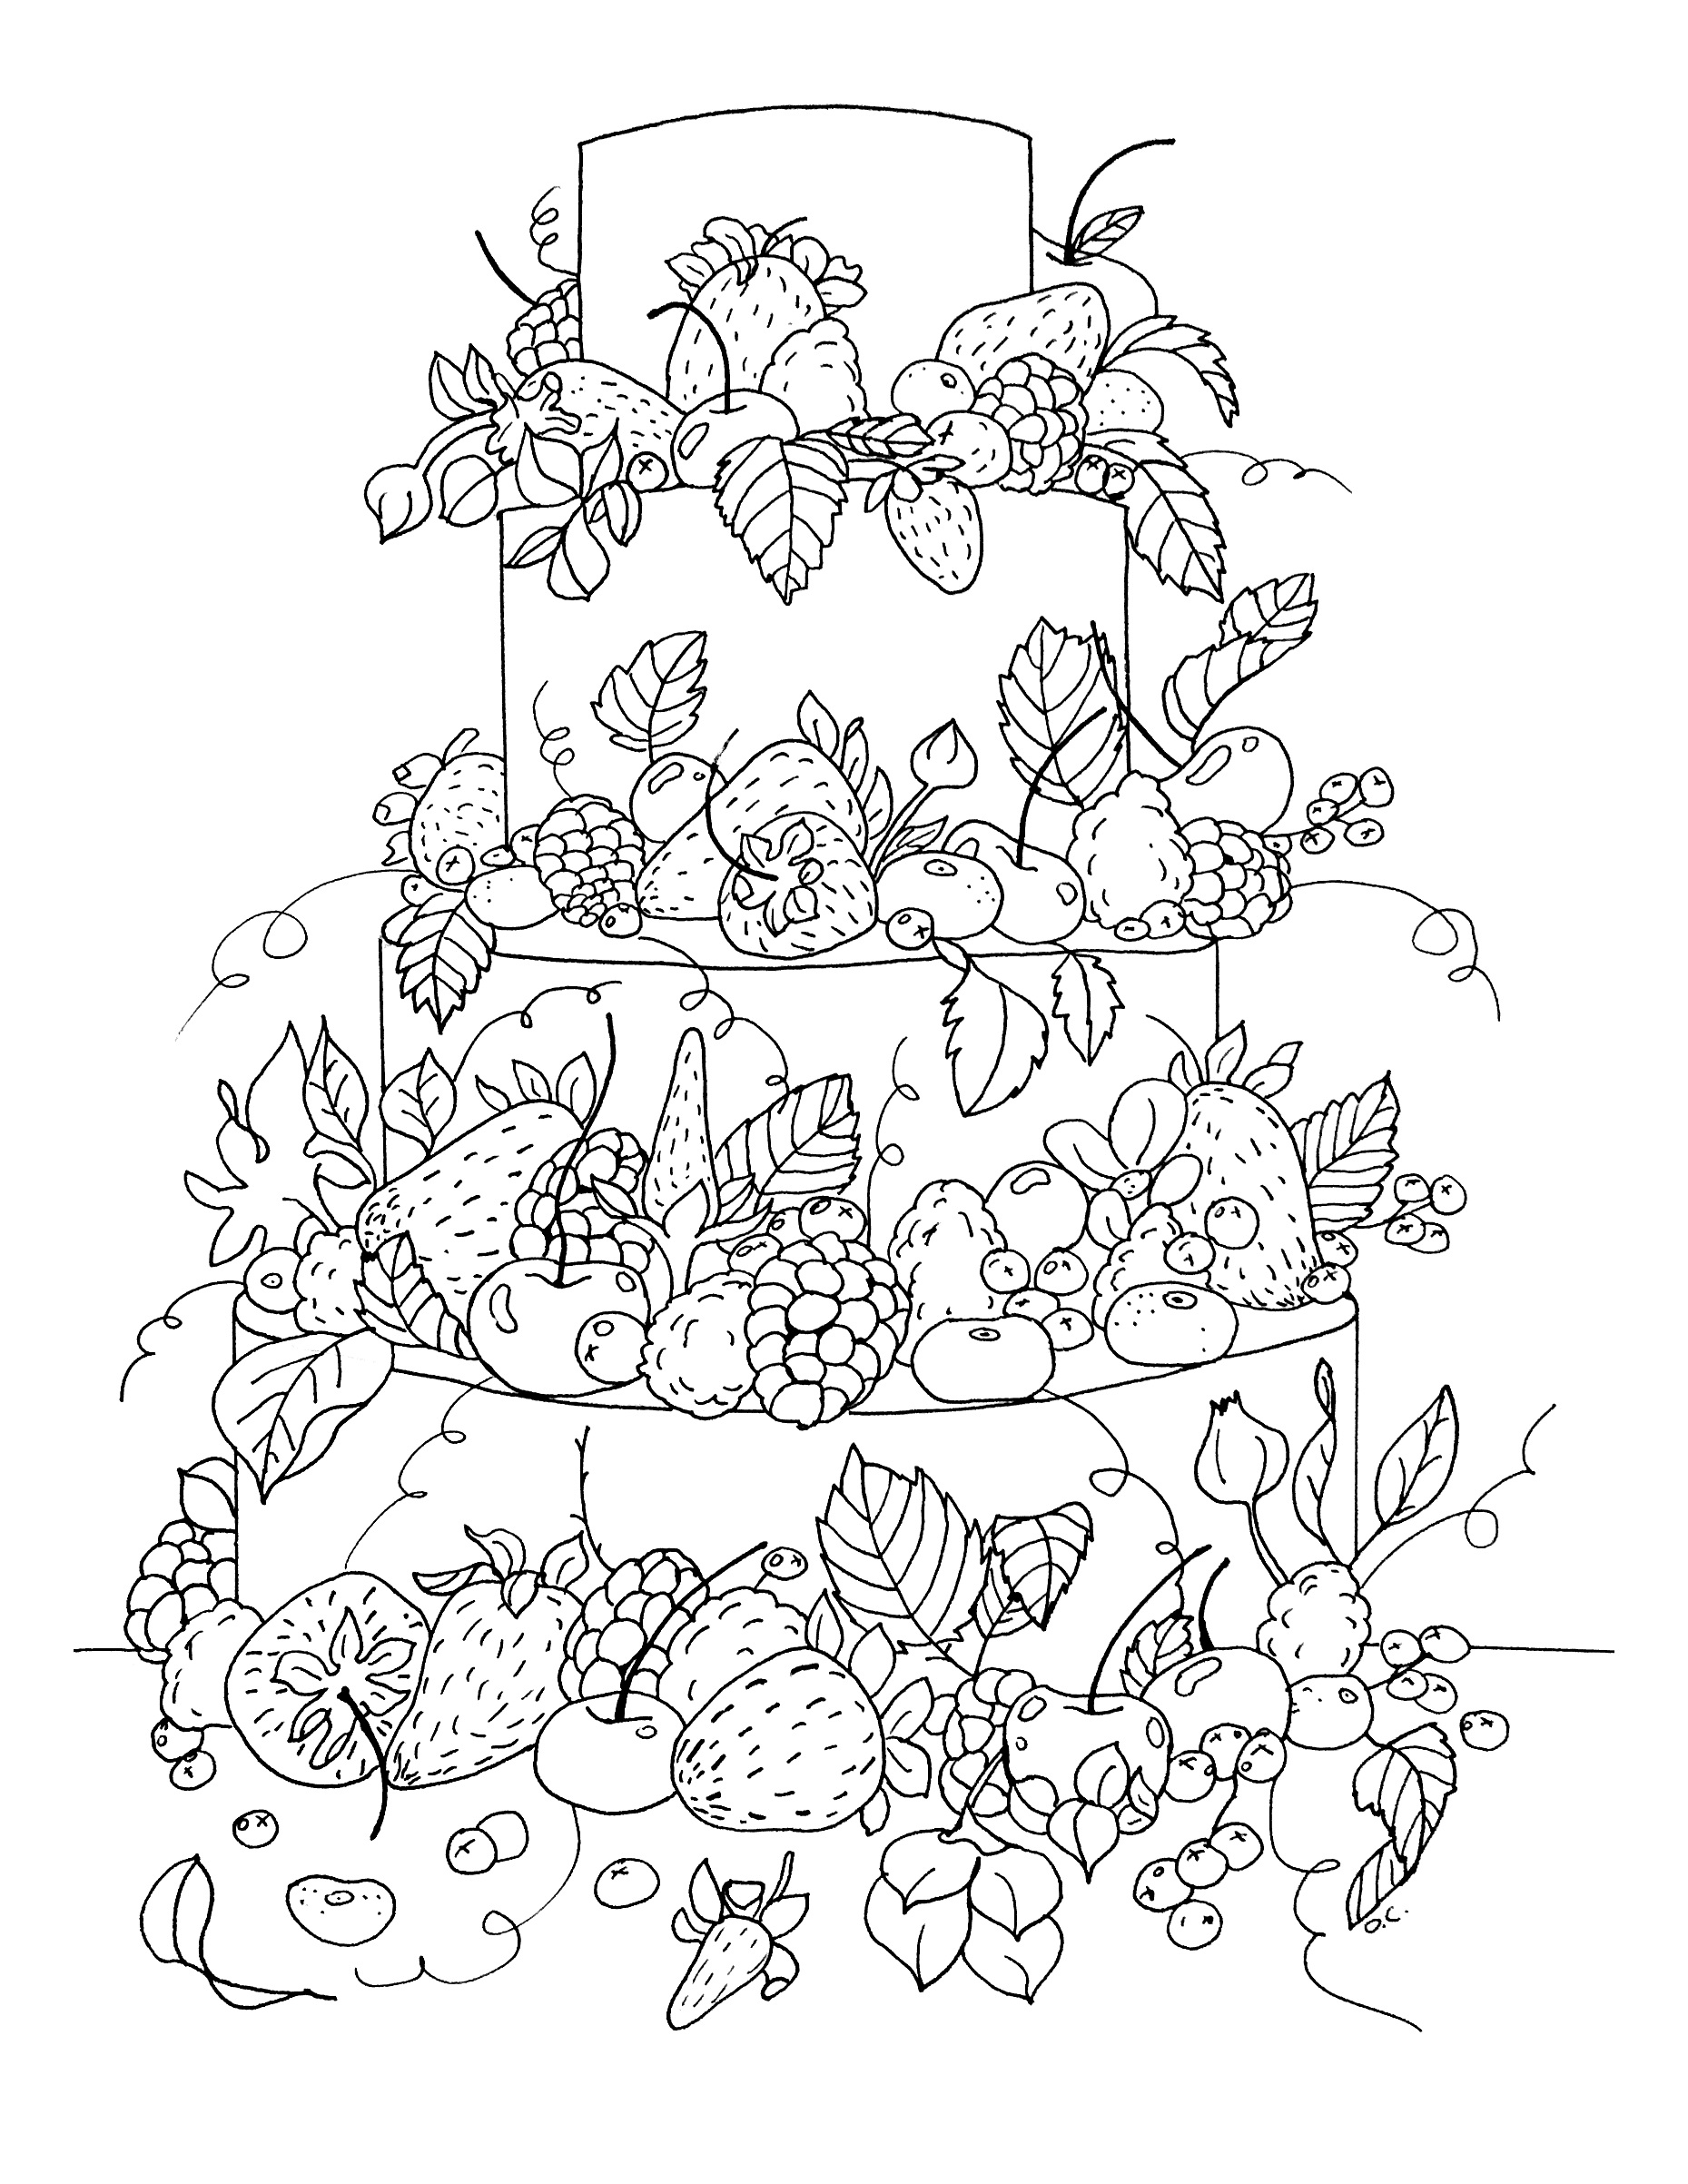 Big fruit cake - Cupcakes Adult Coloring Pages